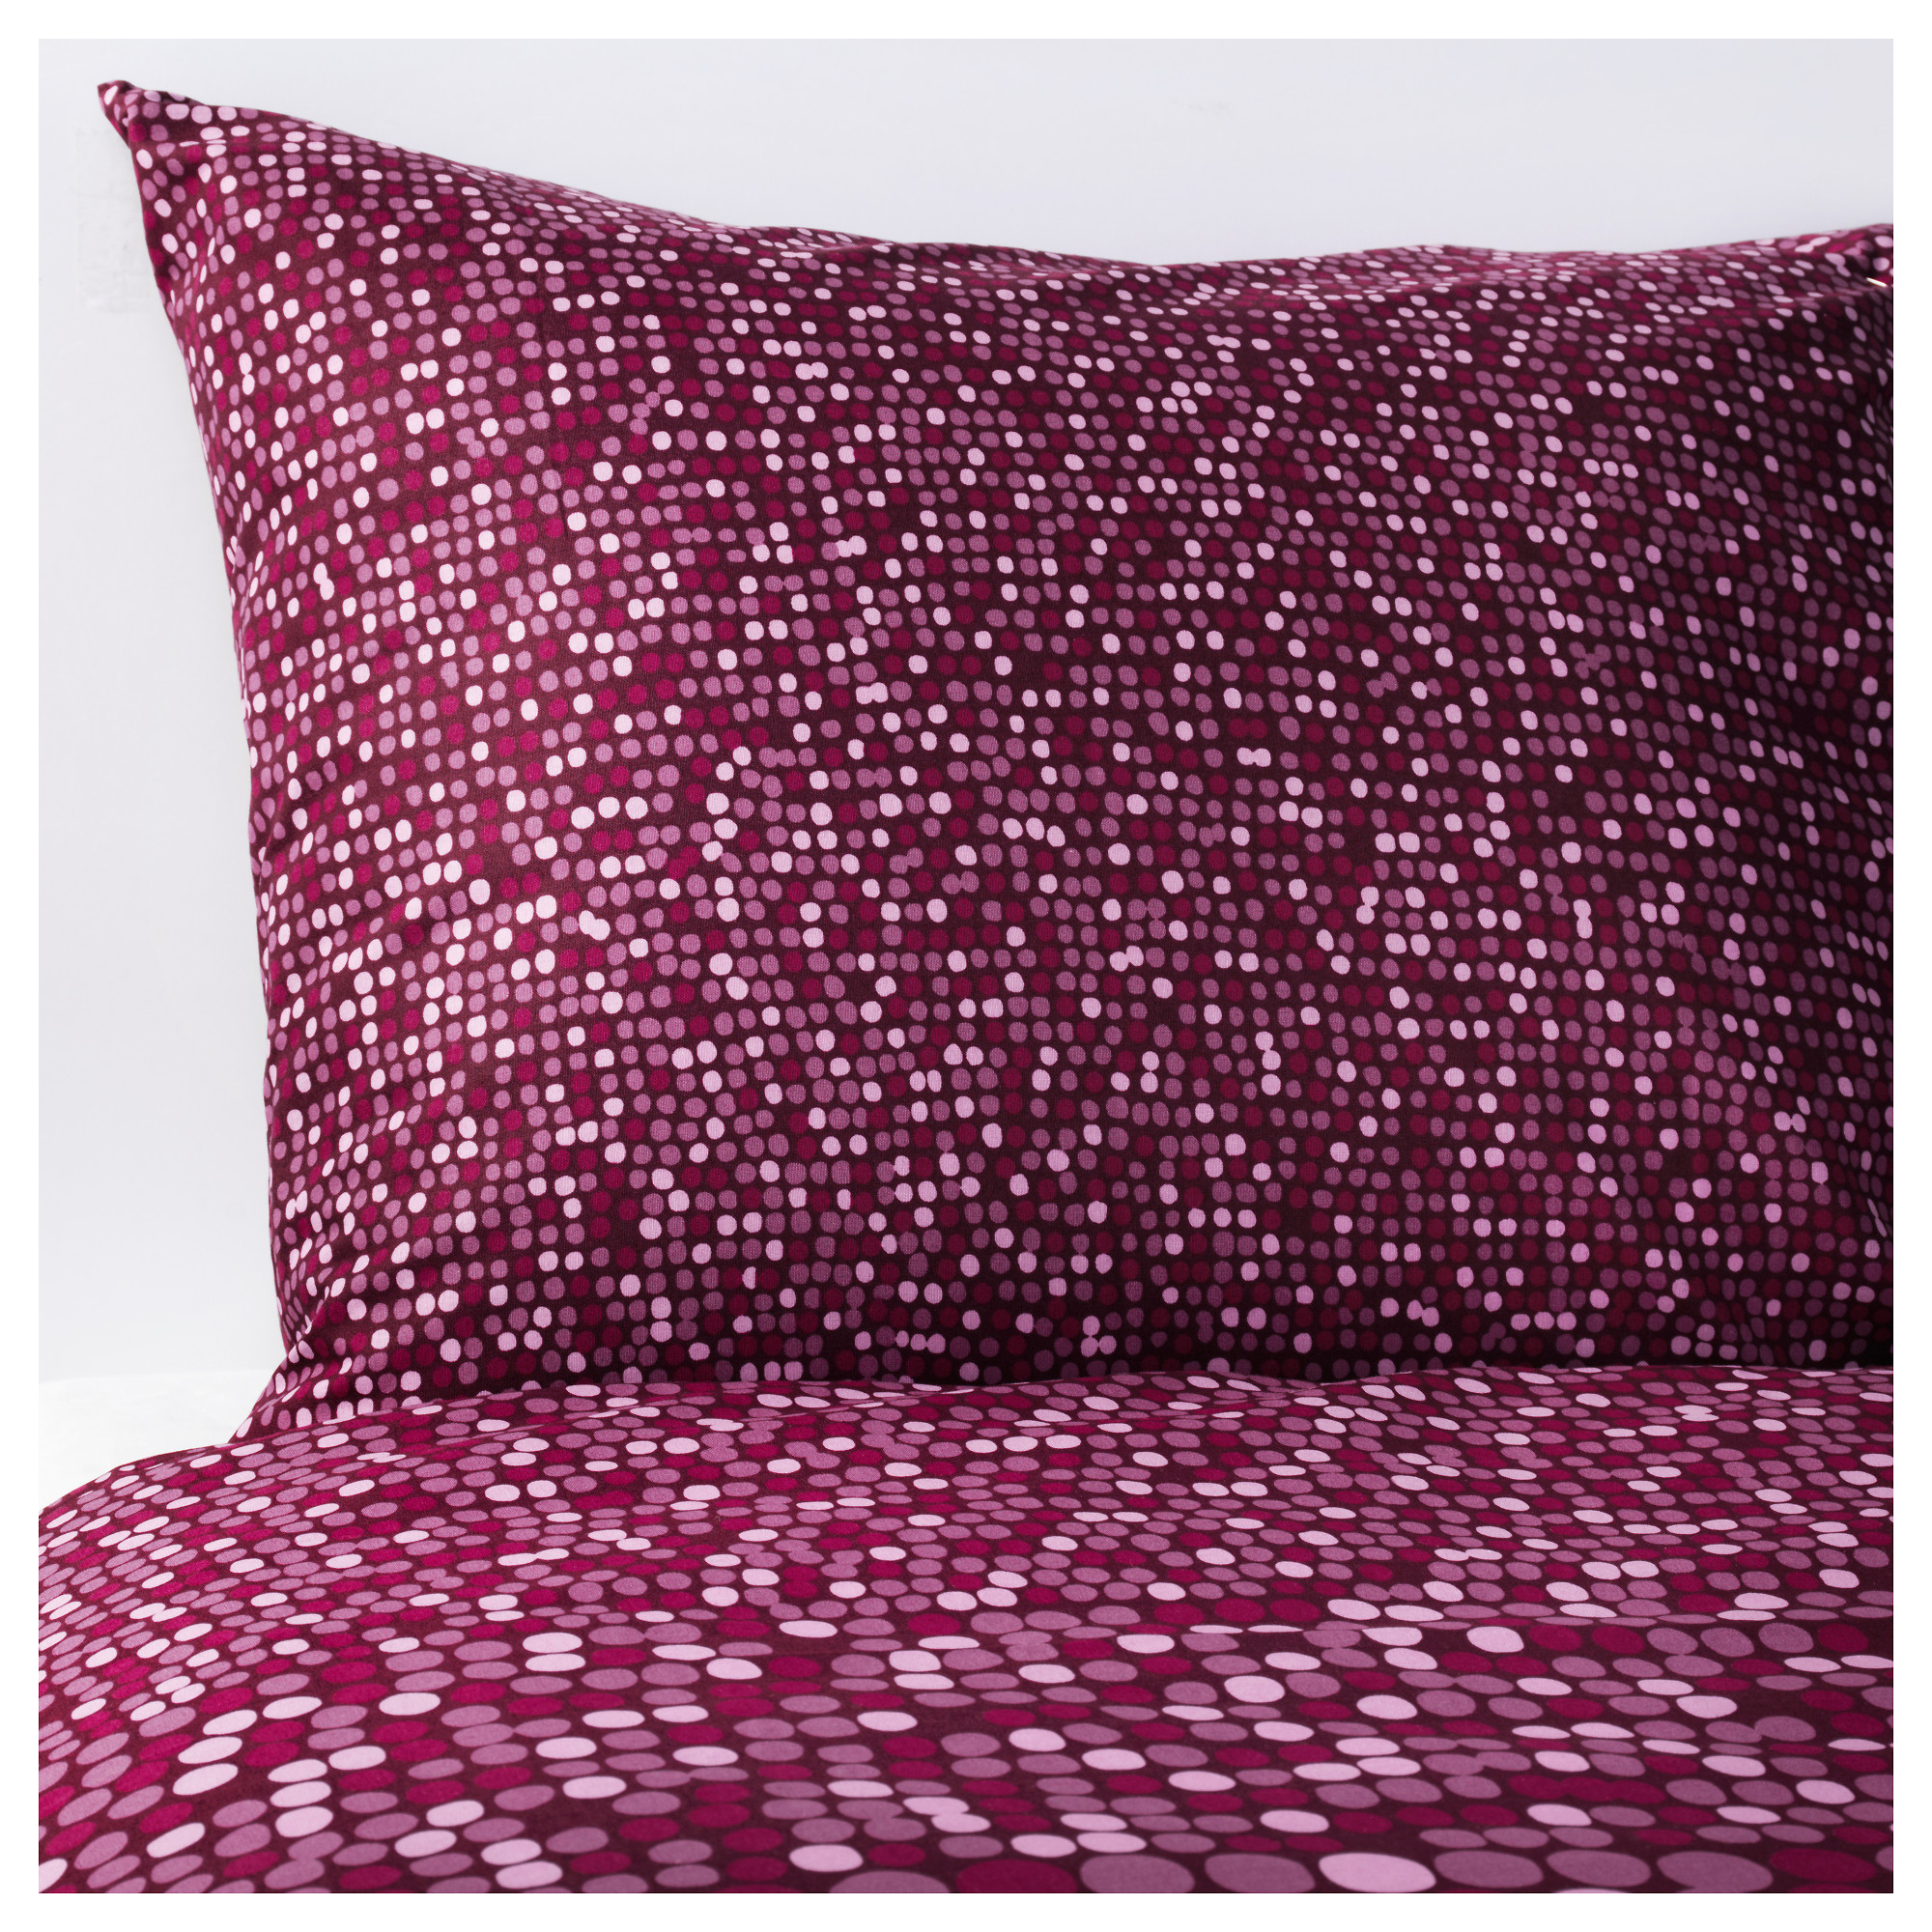 SMRBOLL duvet cover and pillowcase(s), dark pink Thread count: 144 /